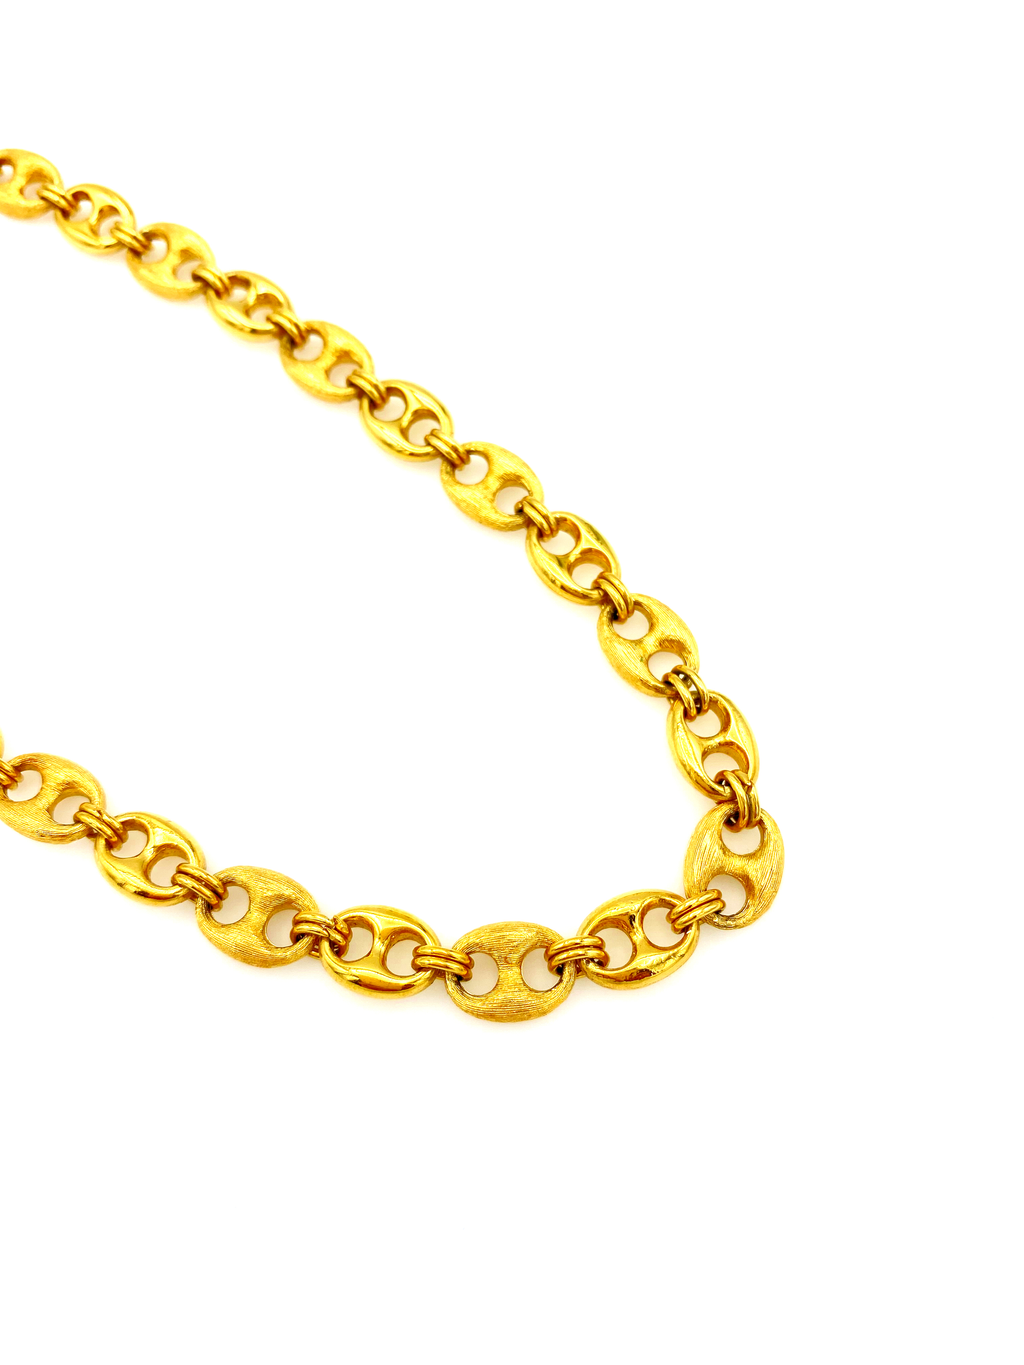 Gold Trifari Layering Mariner Link Chain Necklace-Sustainable Fashion with Vintage Style-Trending Designer Fashion-24 Wishes